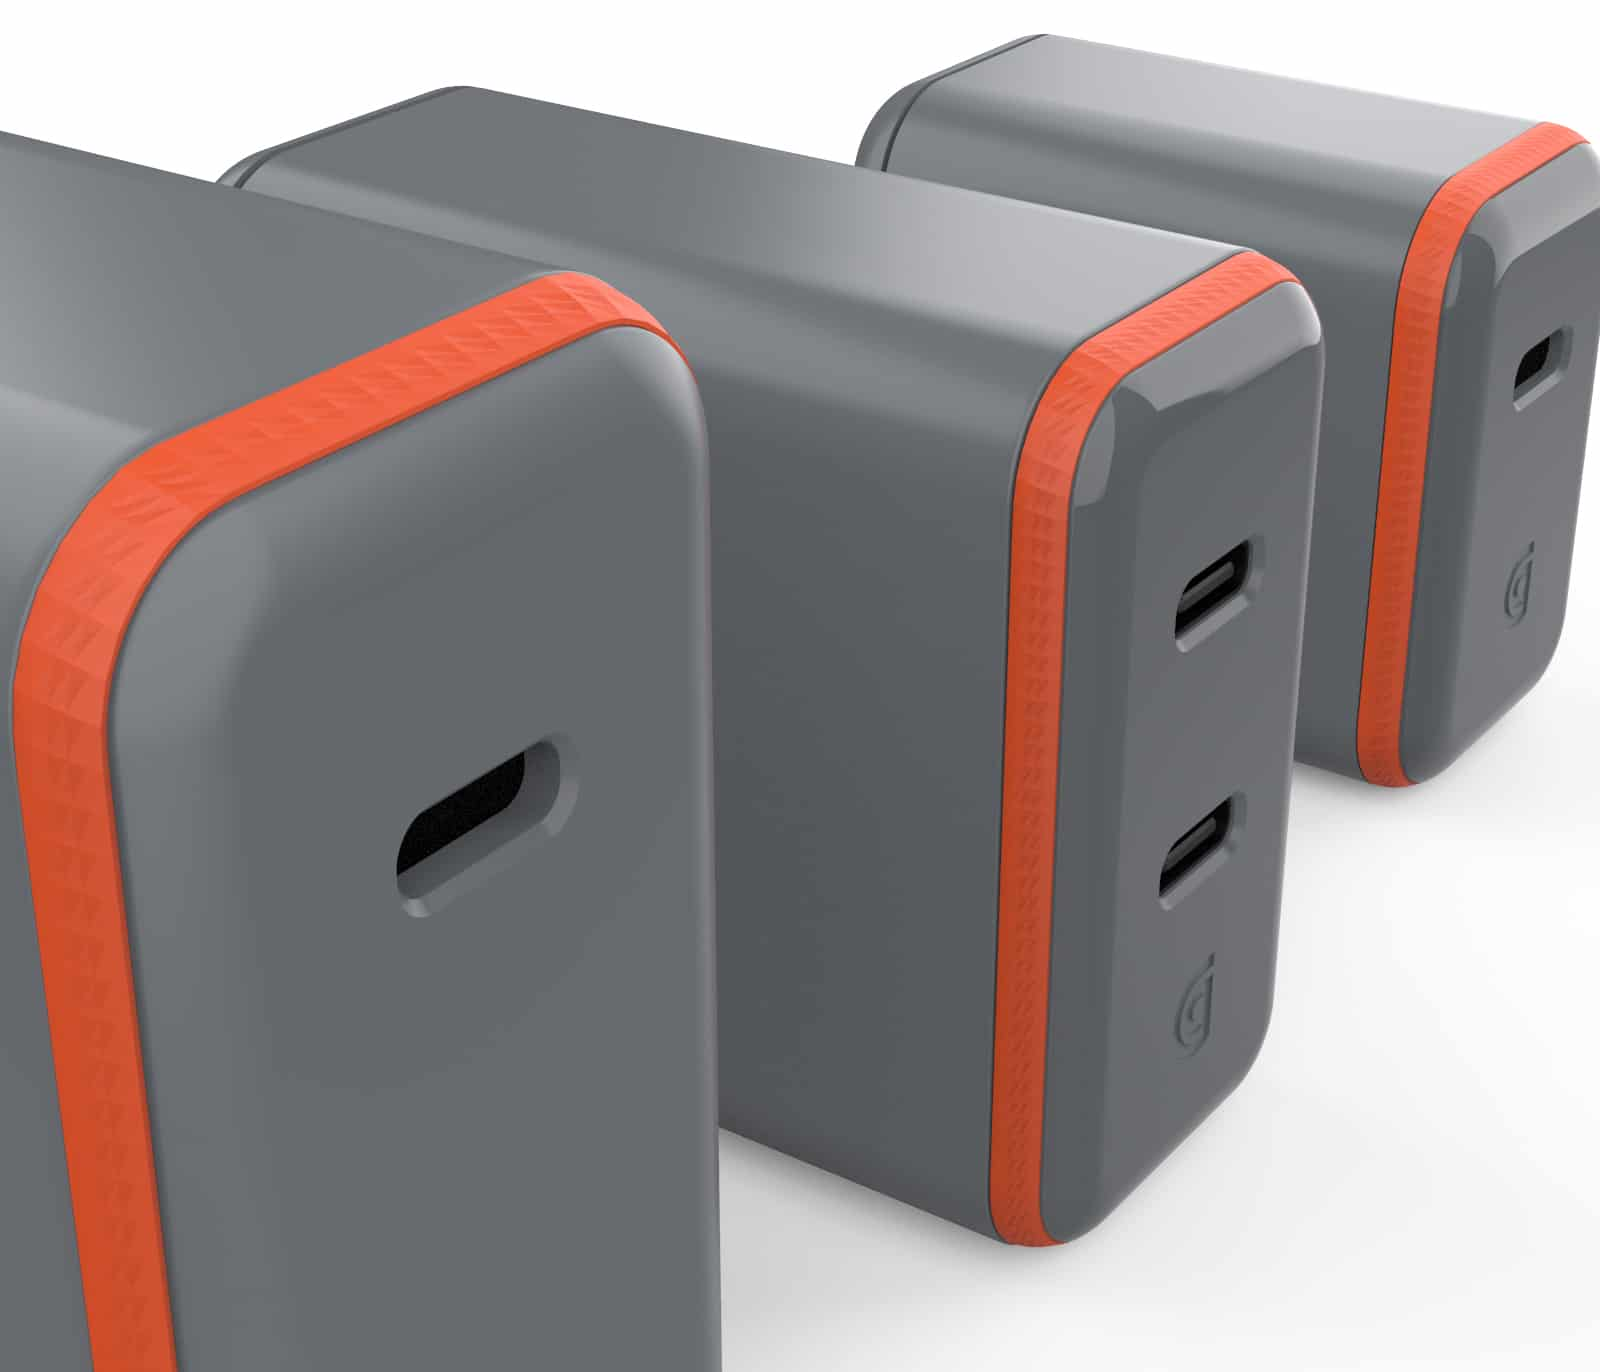 Griffin PowerBlock USB C PD Wall Chargers with GaN Technology Group Close Up